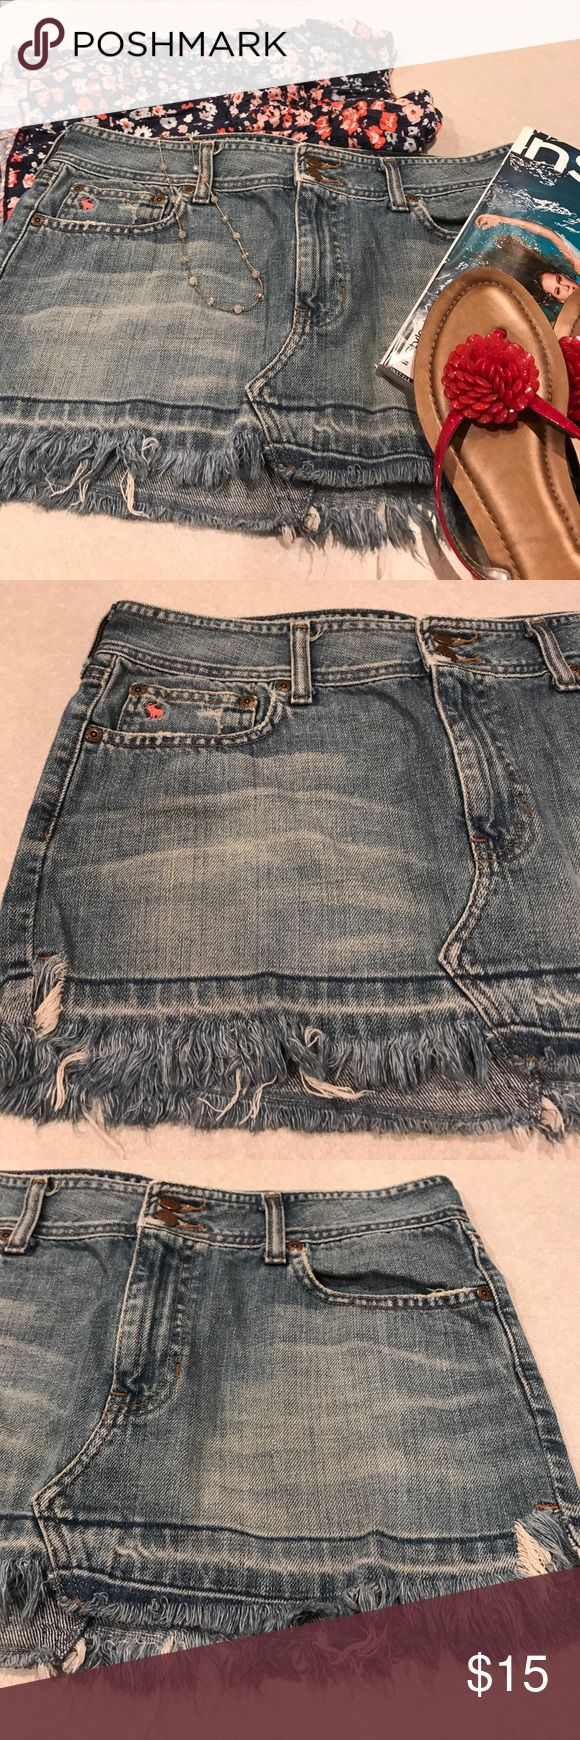 👛Abercrombie and fitch skirt👛 Very cute distressed jean skirt. In excellent condition. Super cute. Is 17 inches across the waistline and 11 inches from top to bottom. Let me know if you have any questions. Abercrombie & Fitch Skirts